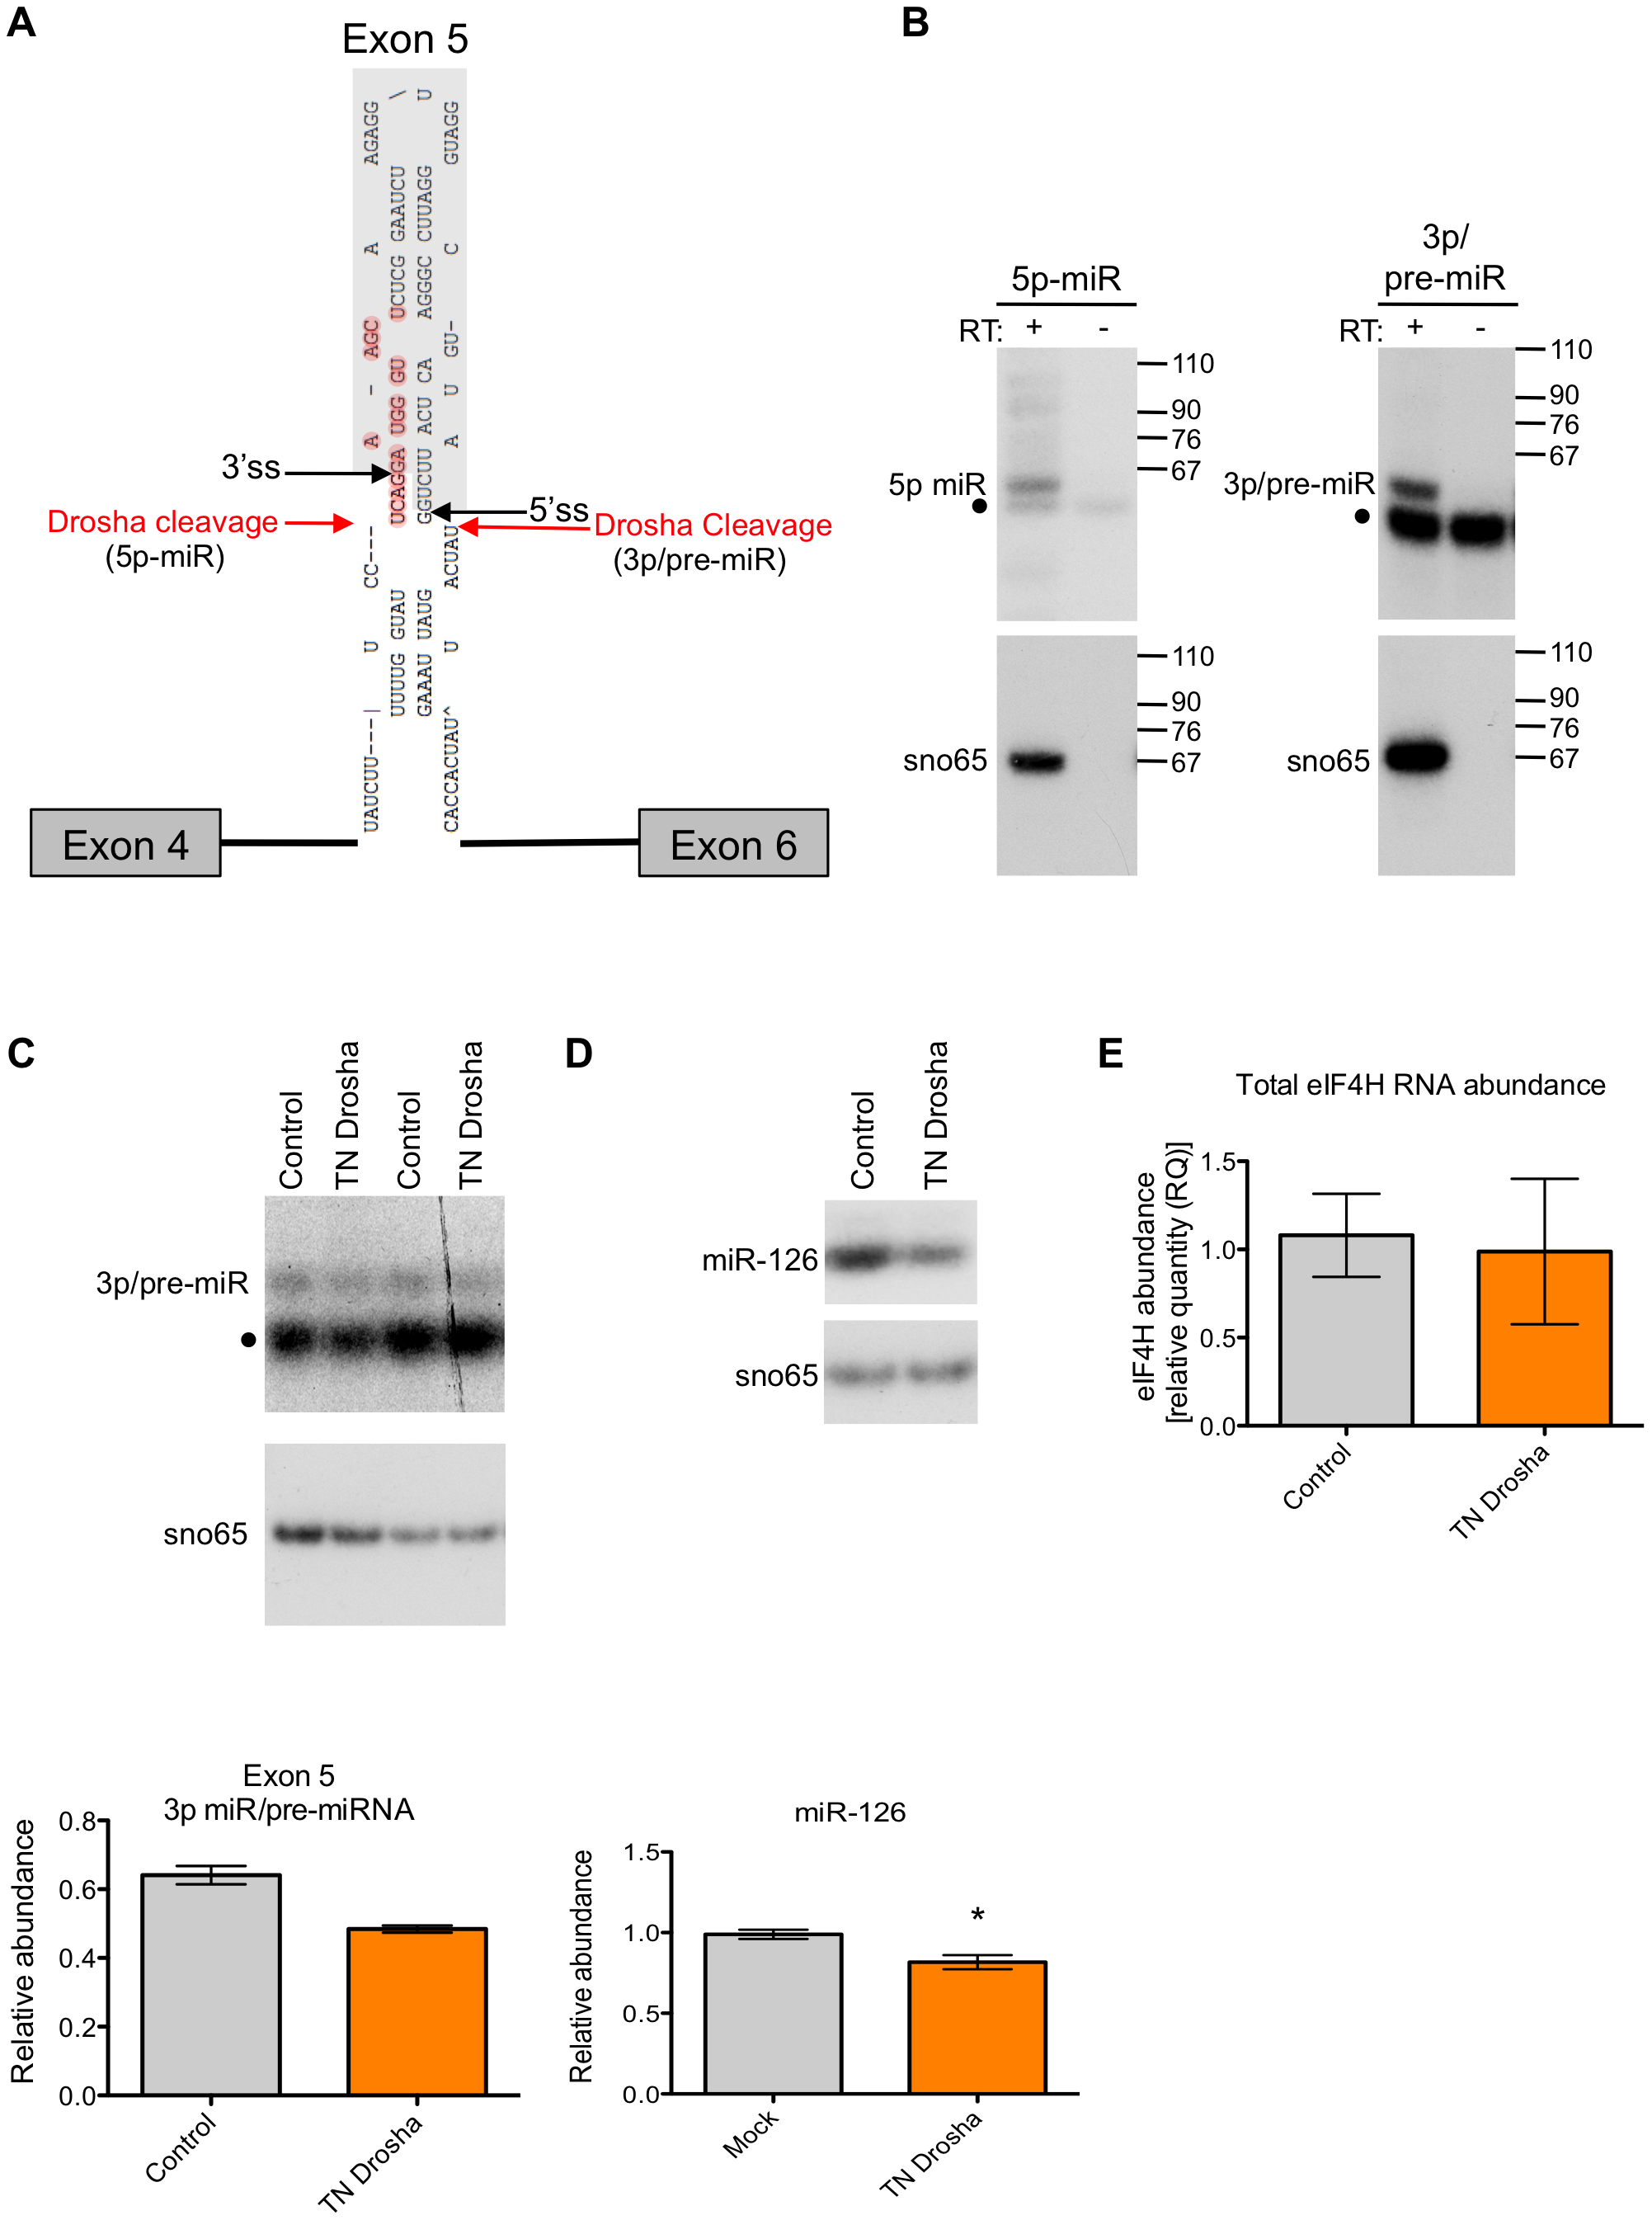 Exon 5 is cleaved from RNA <i>in vitro</i> and in cells.